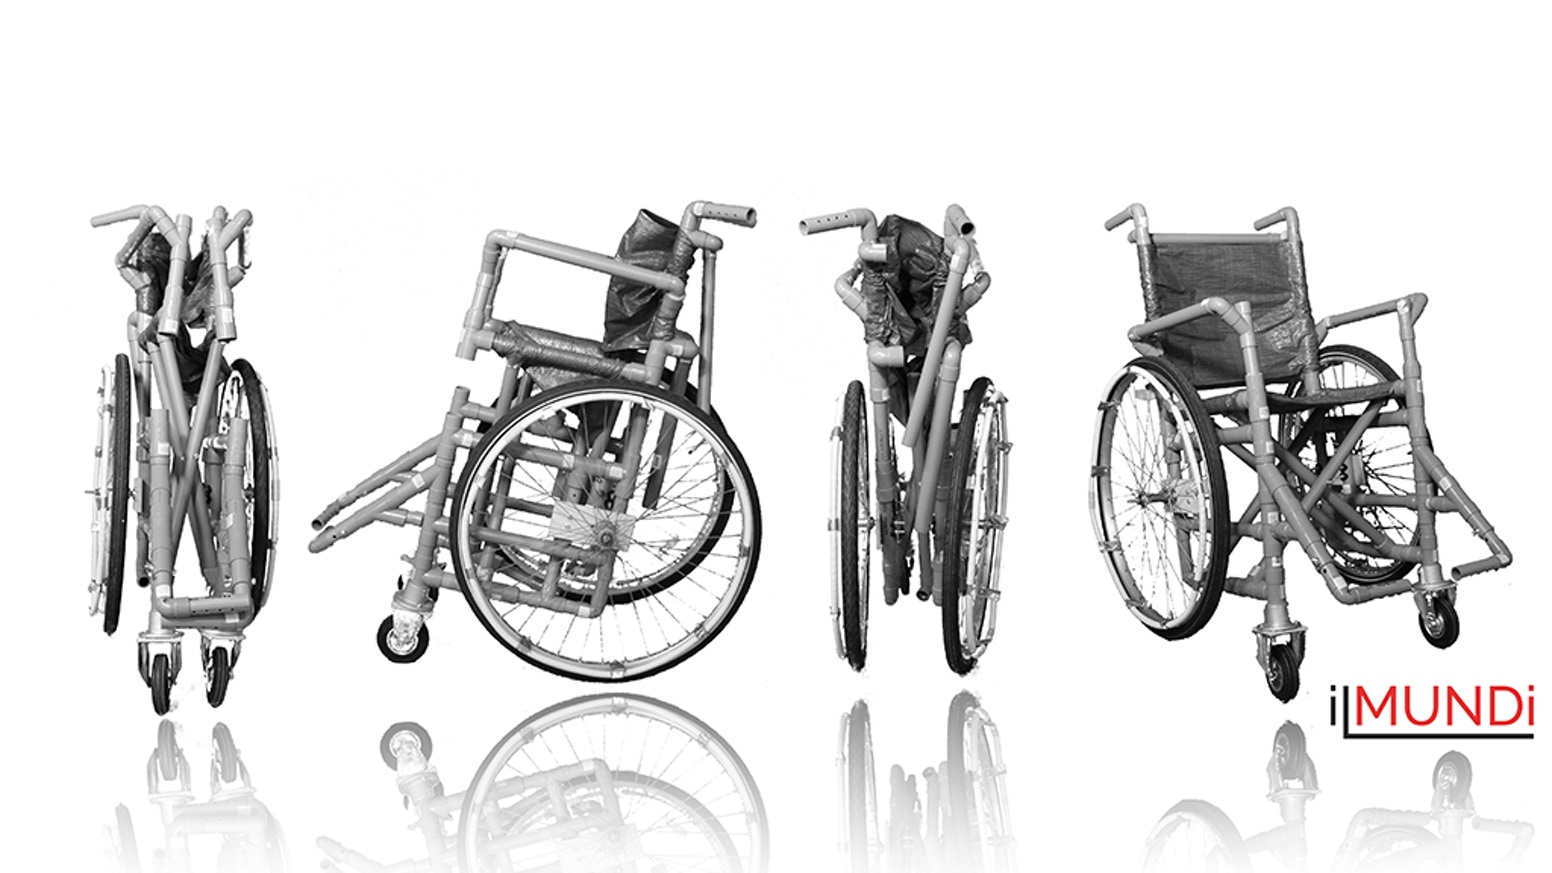 We are creating the first DIY folding wheelchair to help less fortunate individuals and organisations in developing countries worldwide